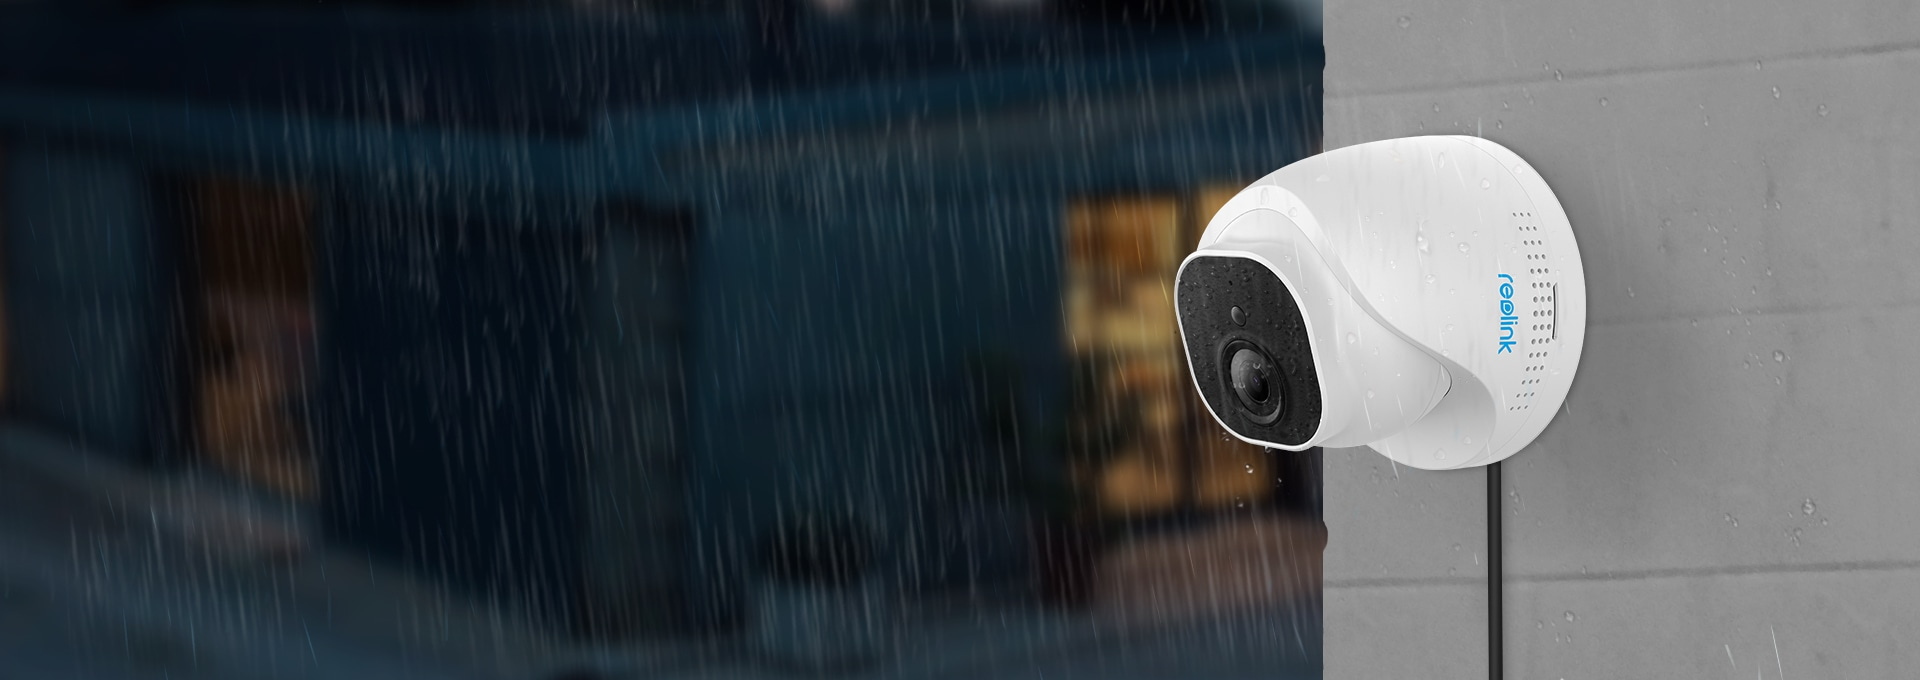 IP66 Waterproof 4K Outdoor Indoor Security Camera System